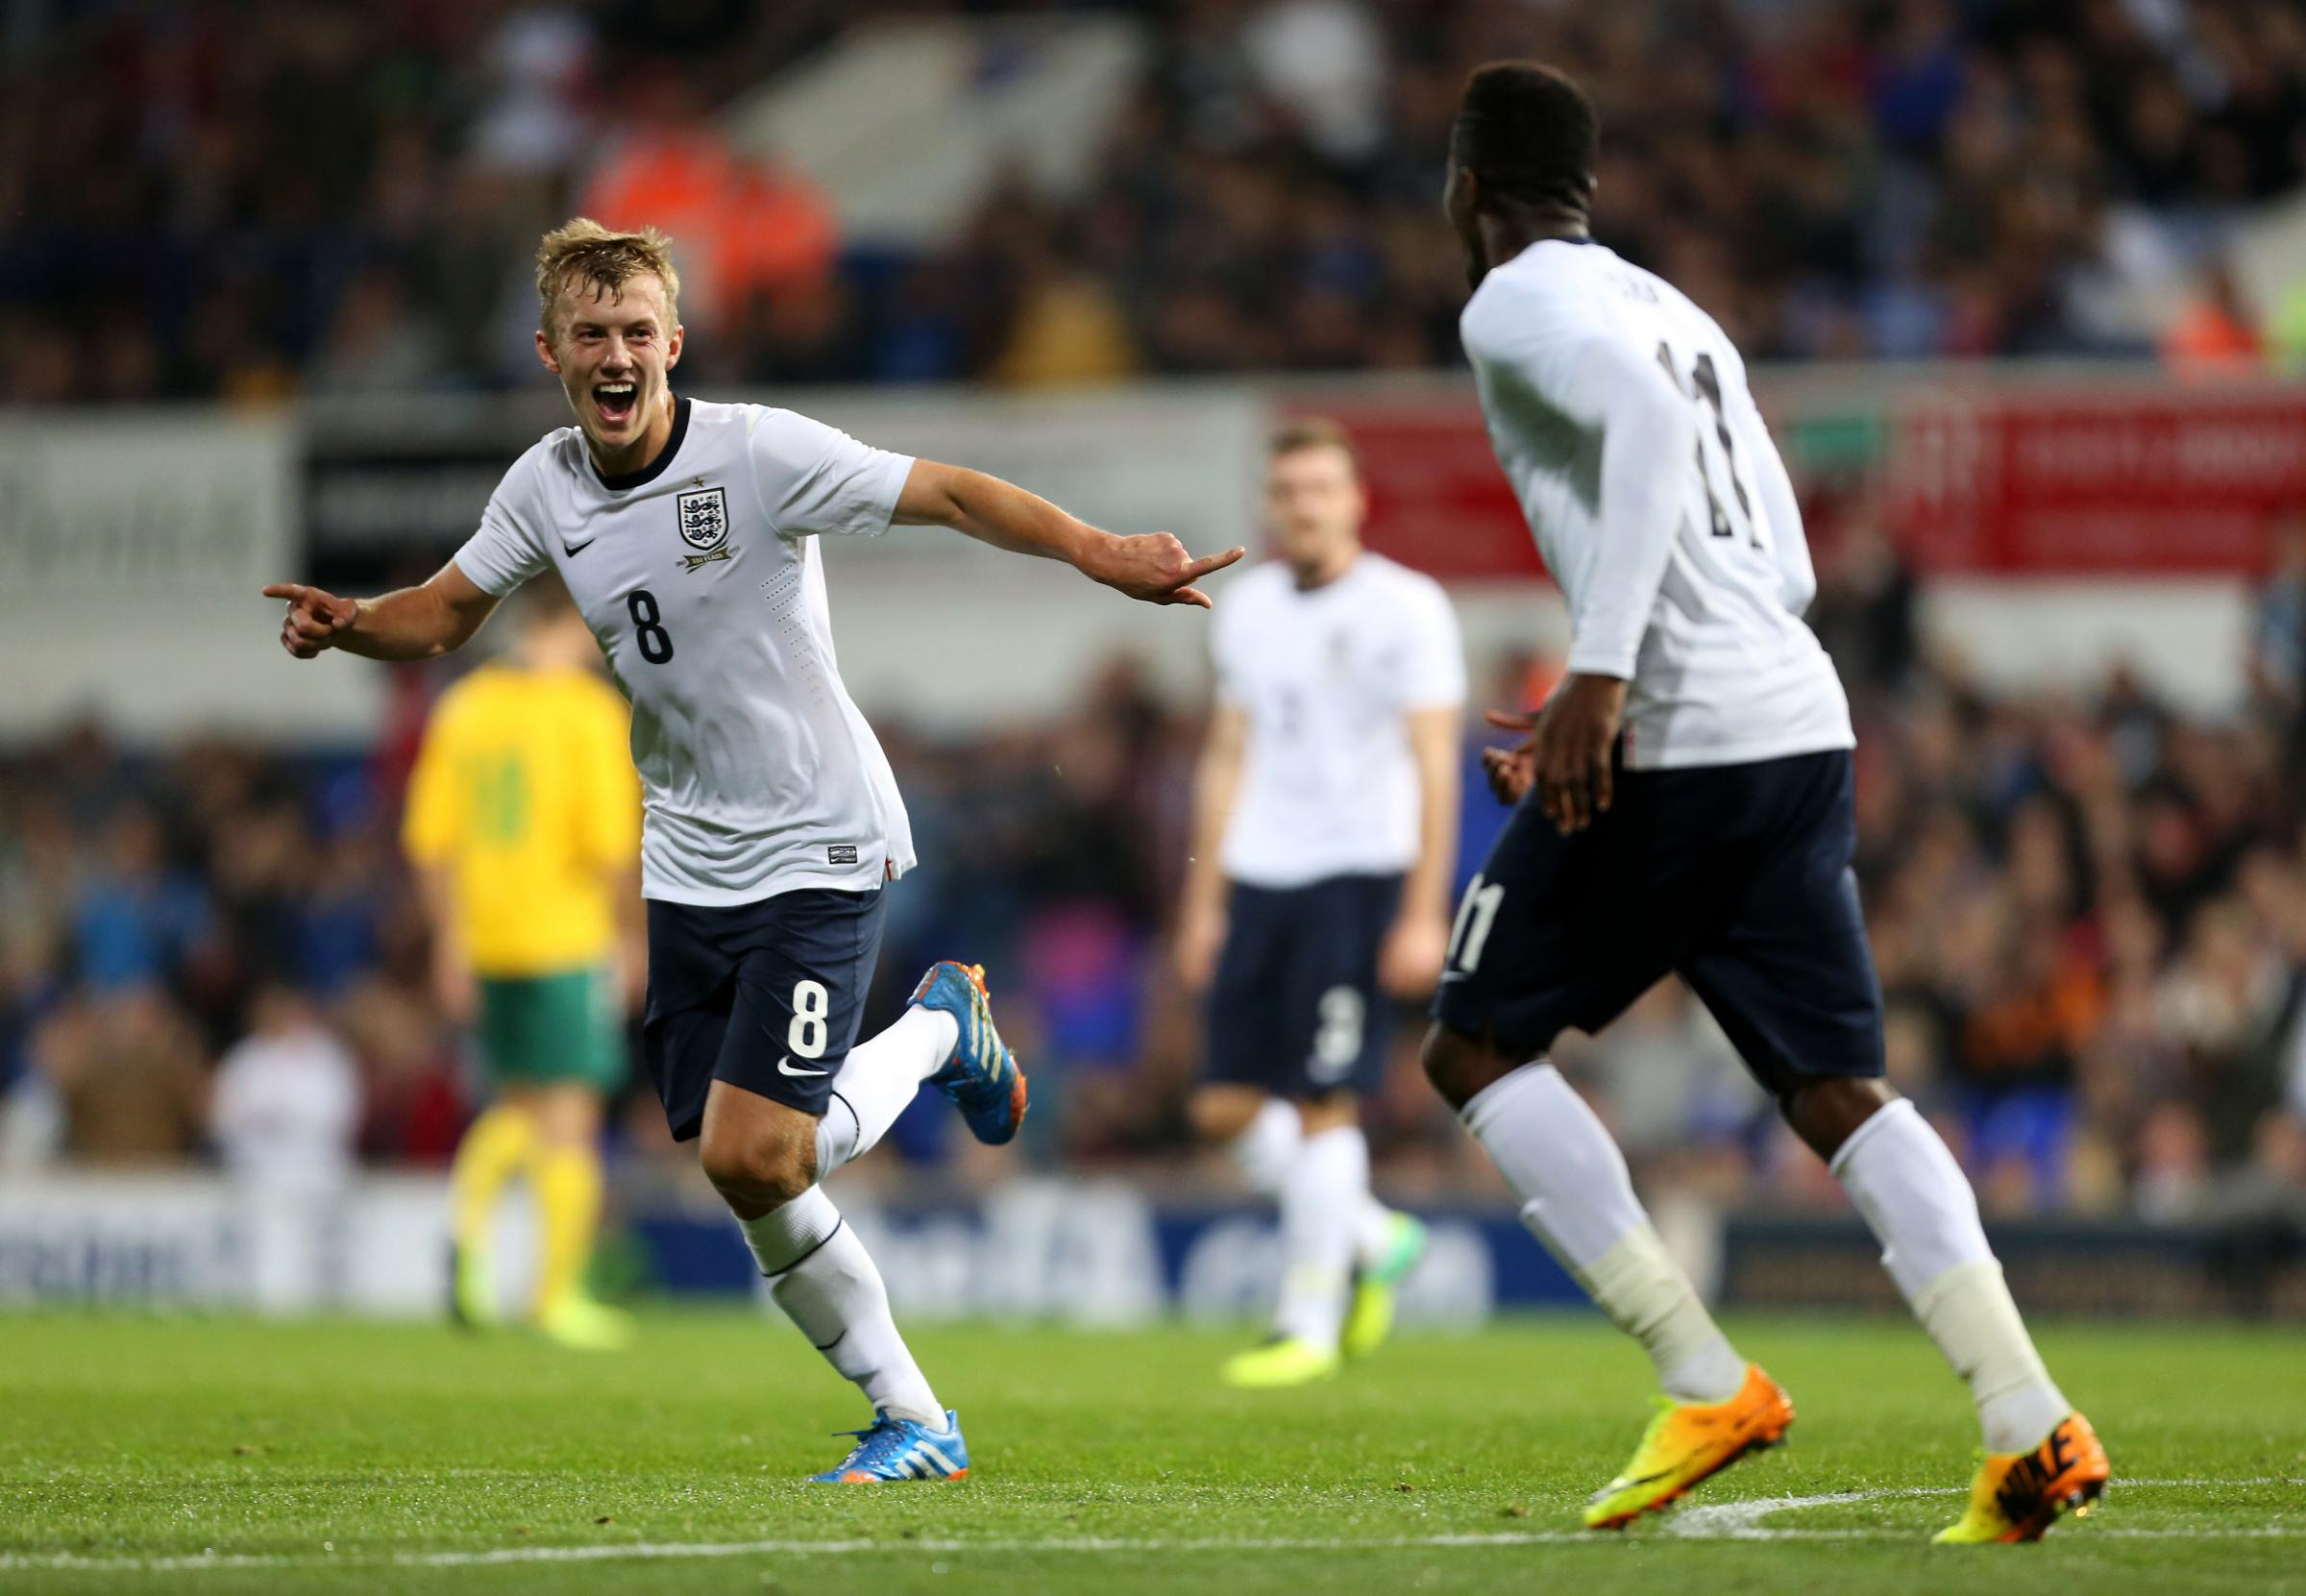 James Ward-Prowse celebrates scoring for England U21s last year